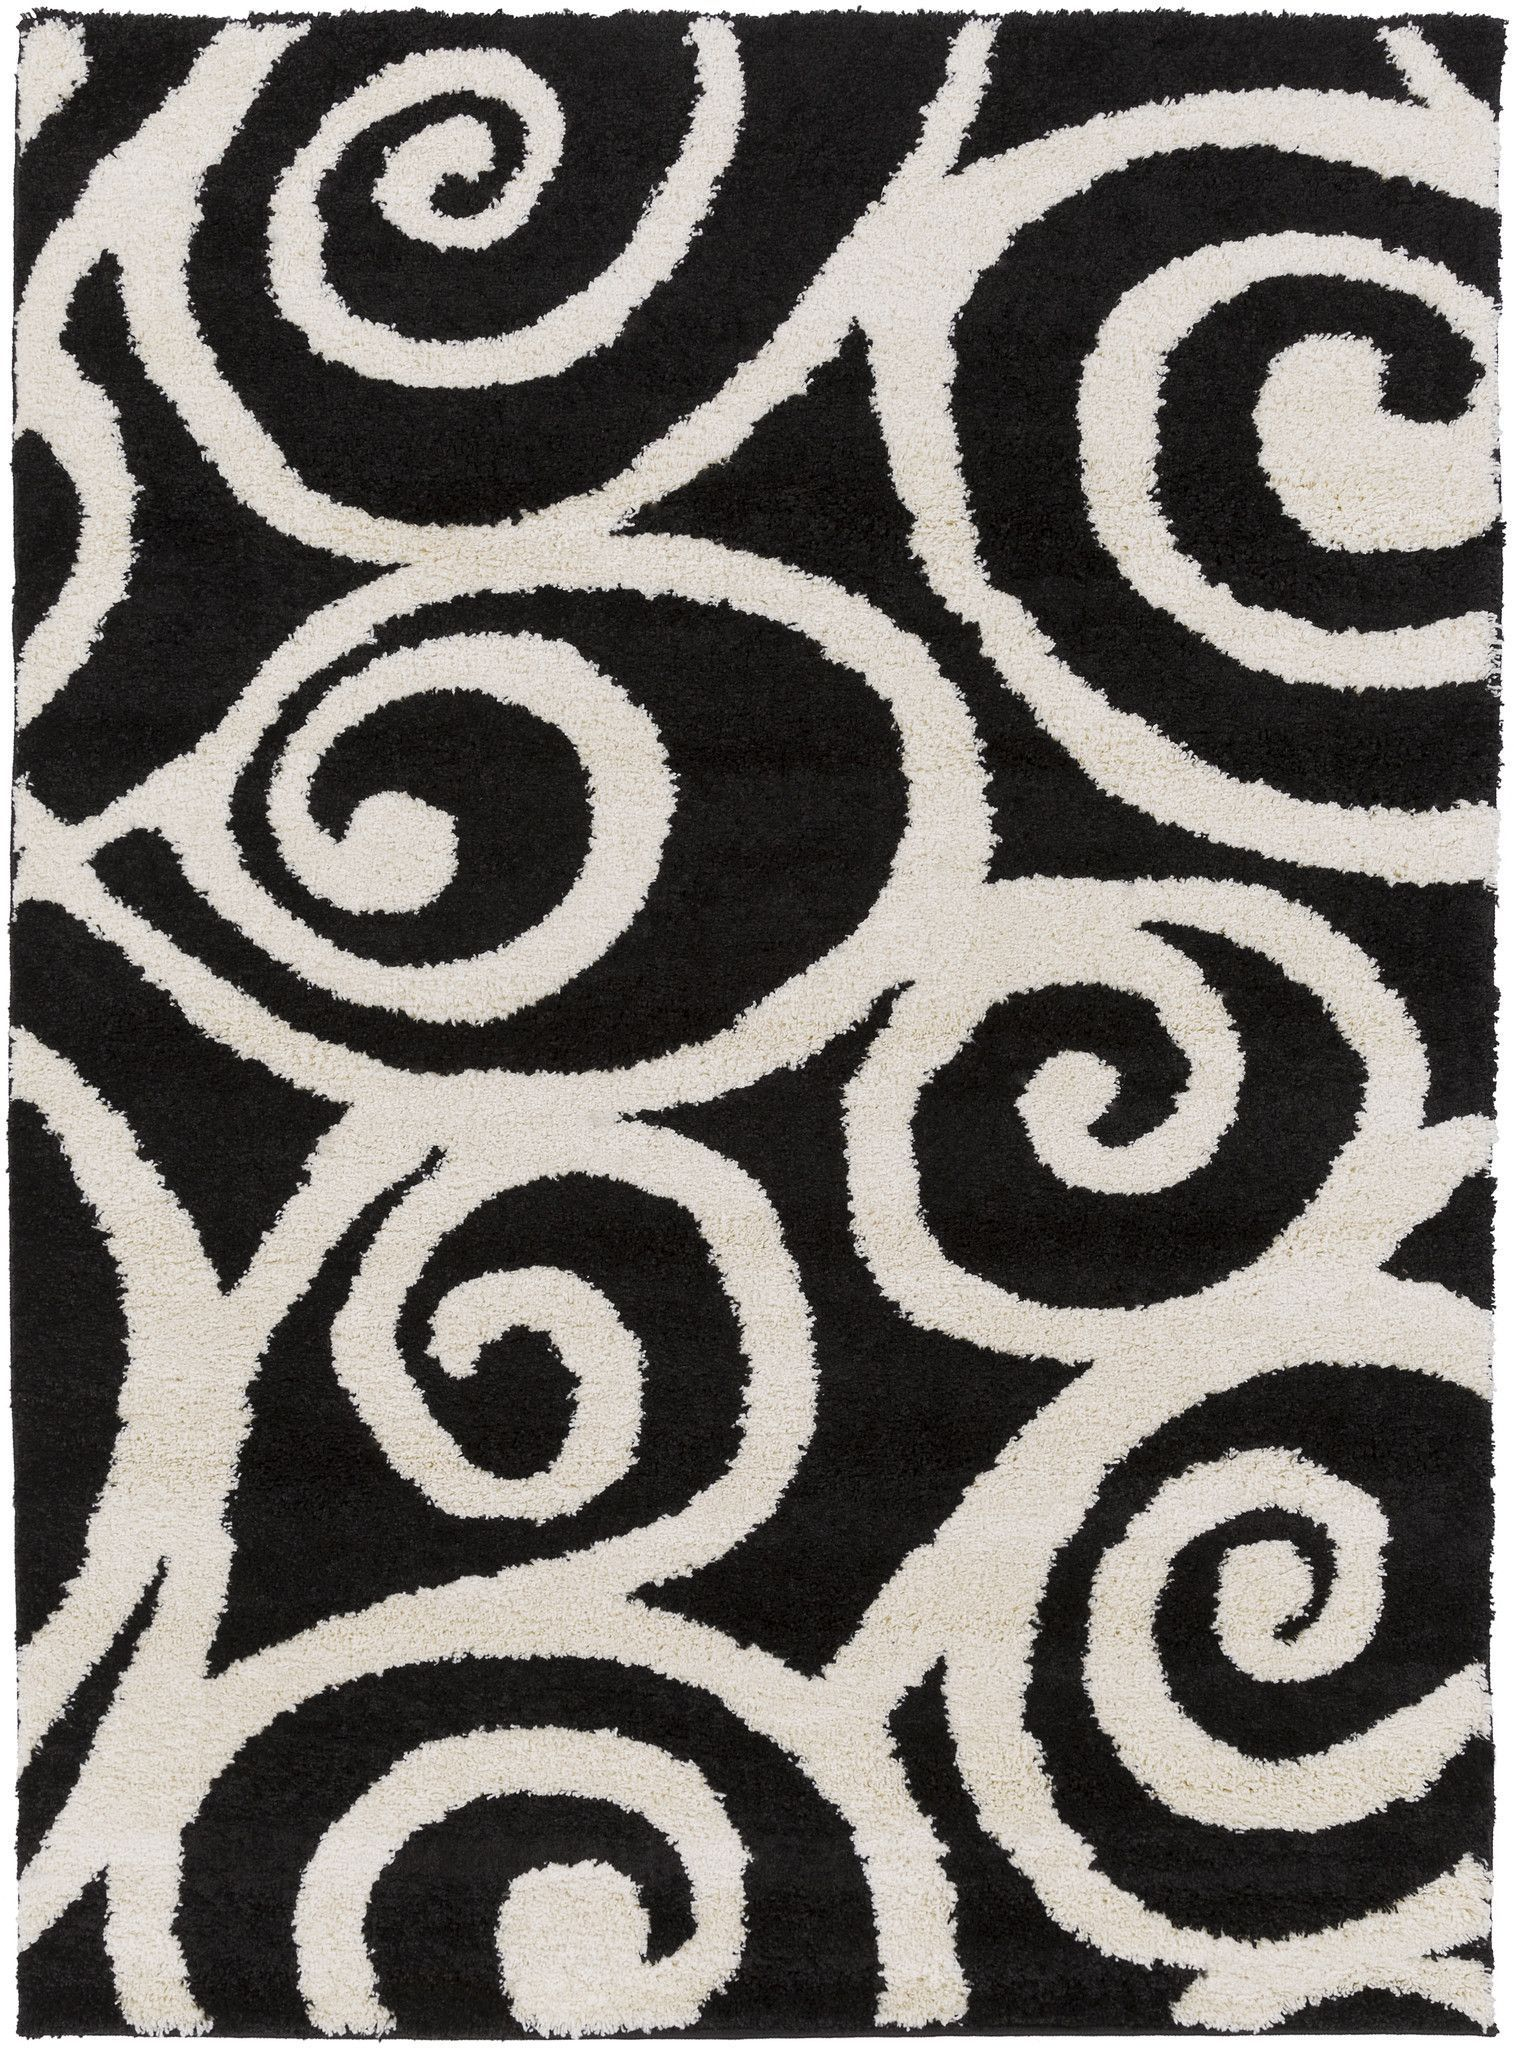 Surya SWT4007 Swift Black Rectangle Area Rug Products